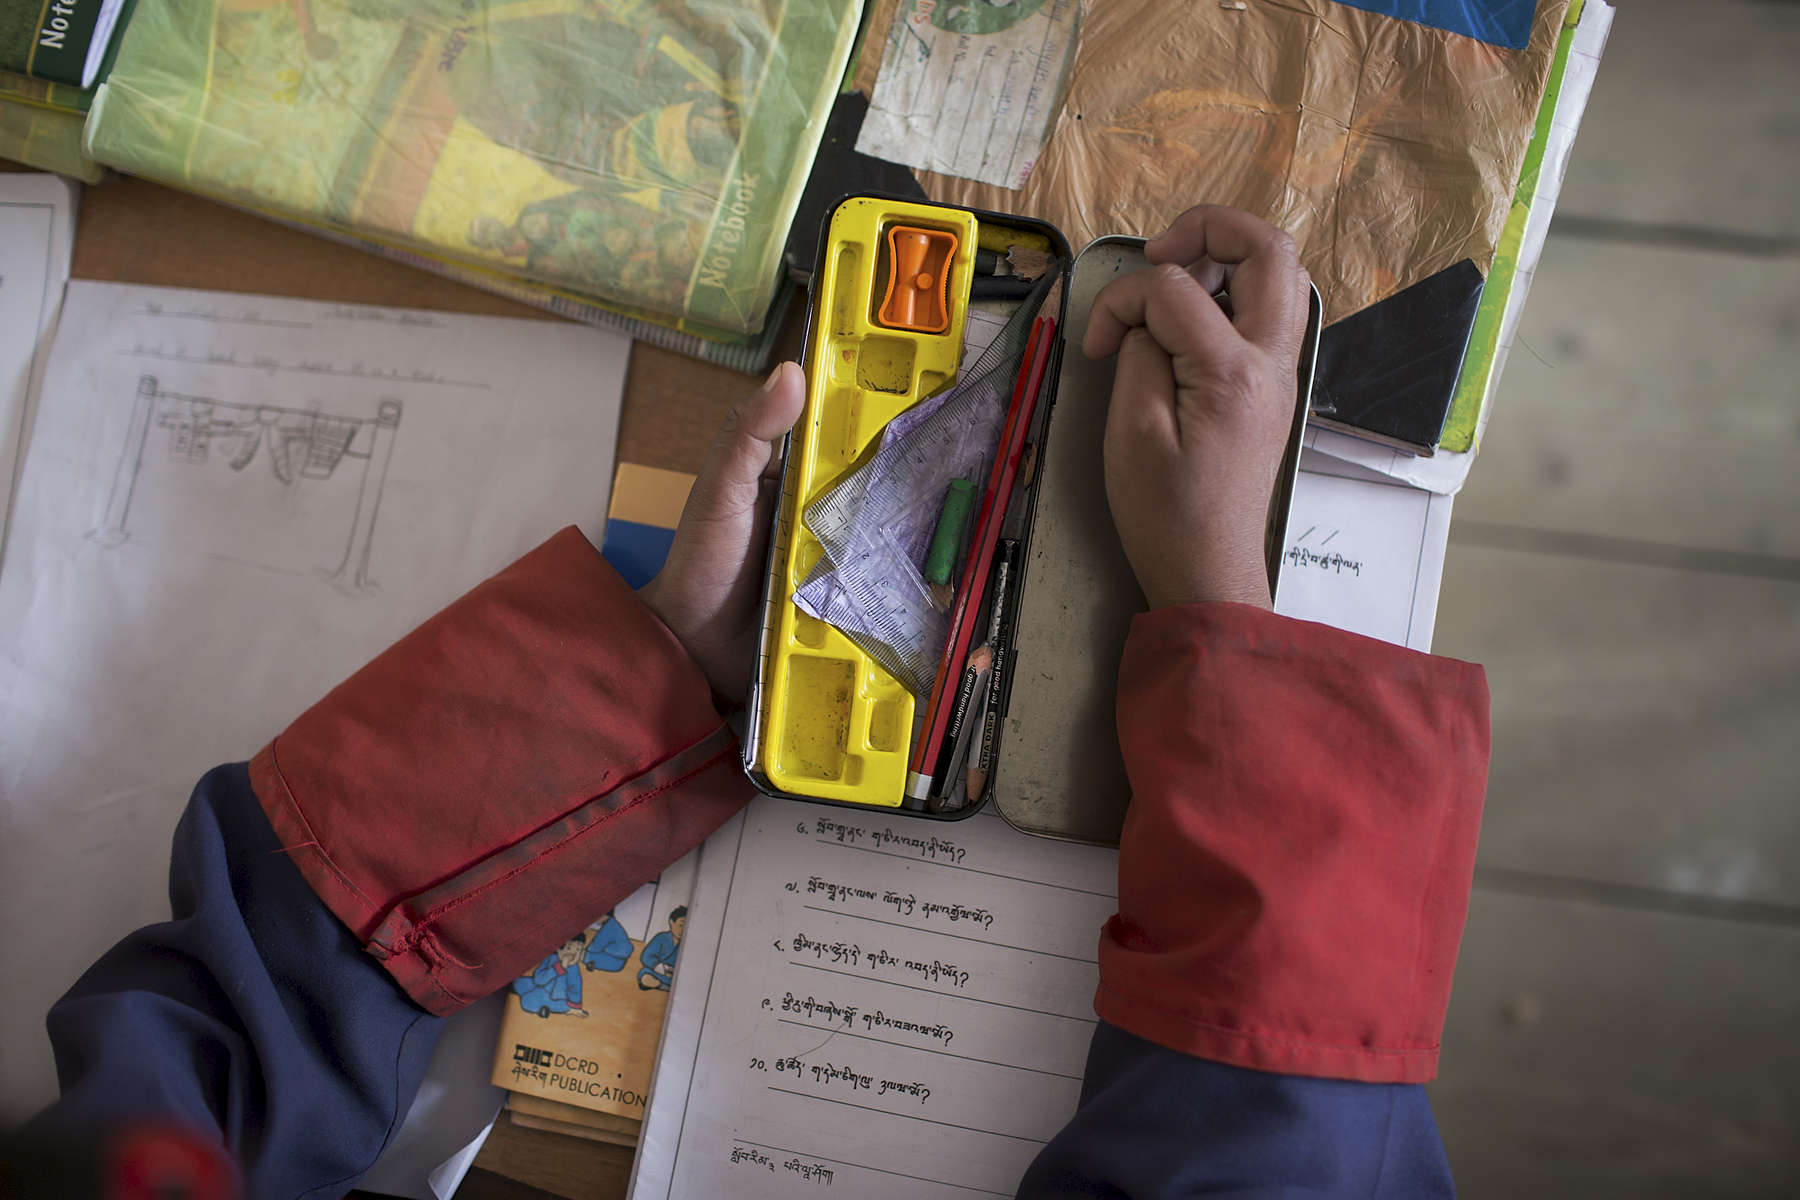 A student at Bitika Lower Secondary School takes her pencil from its case during class in Bhutan.